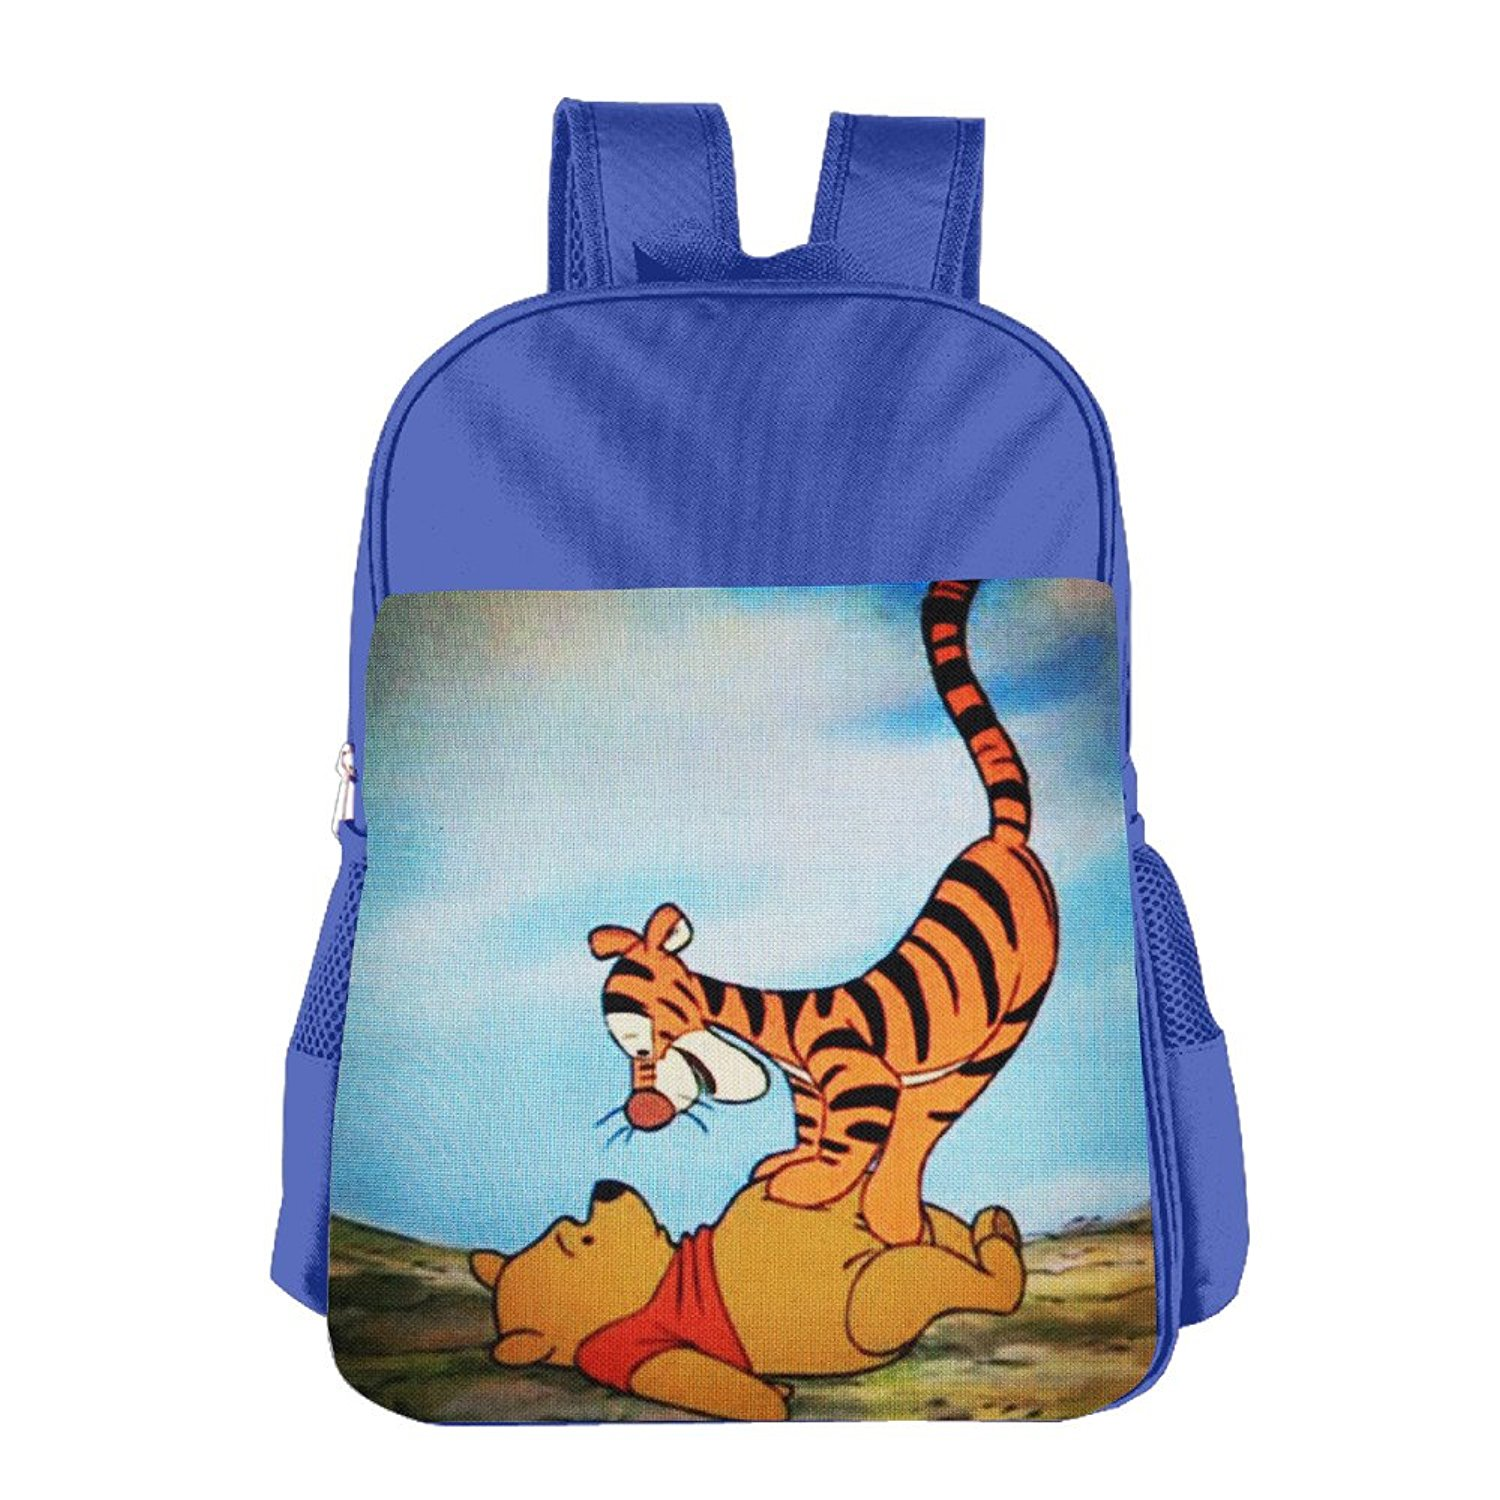 3fb943d6017 The Many Adventures Of Winnie The Pooh Children School Bag RoyalBlue